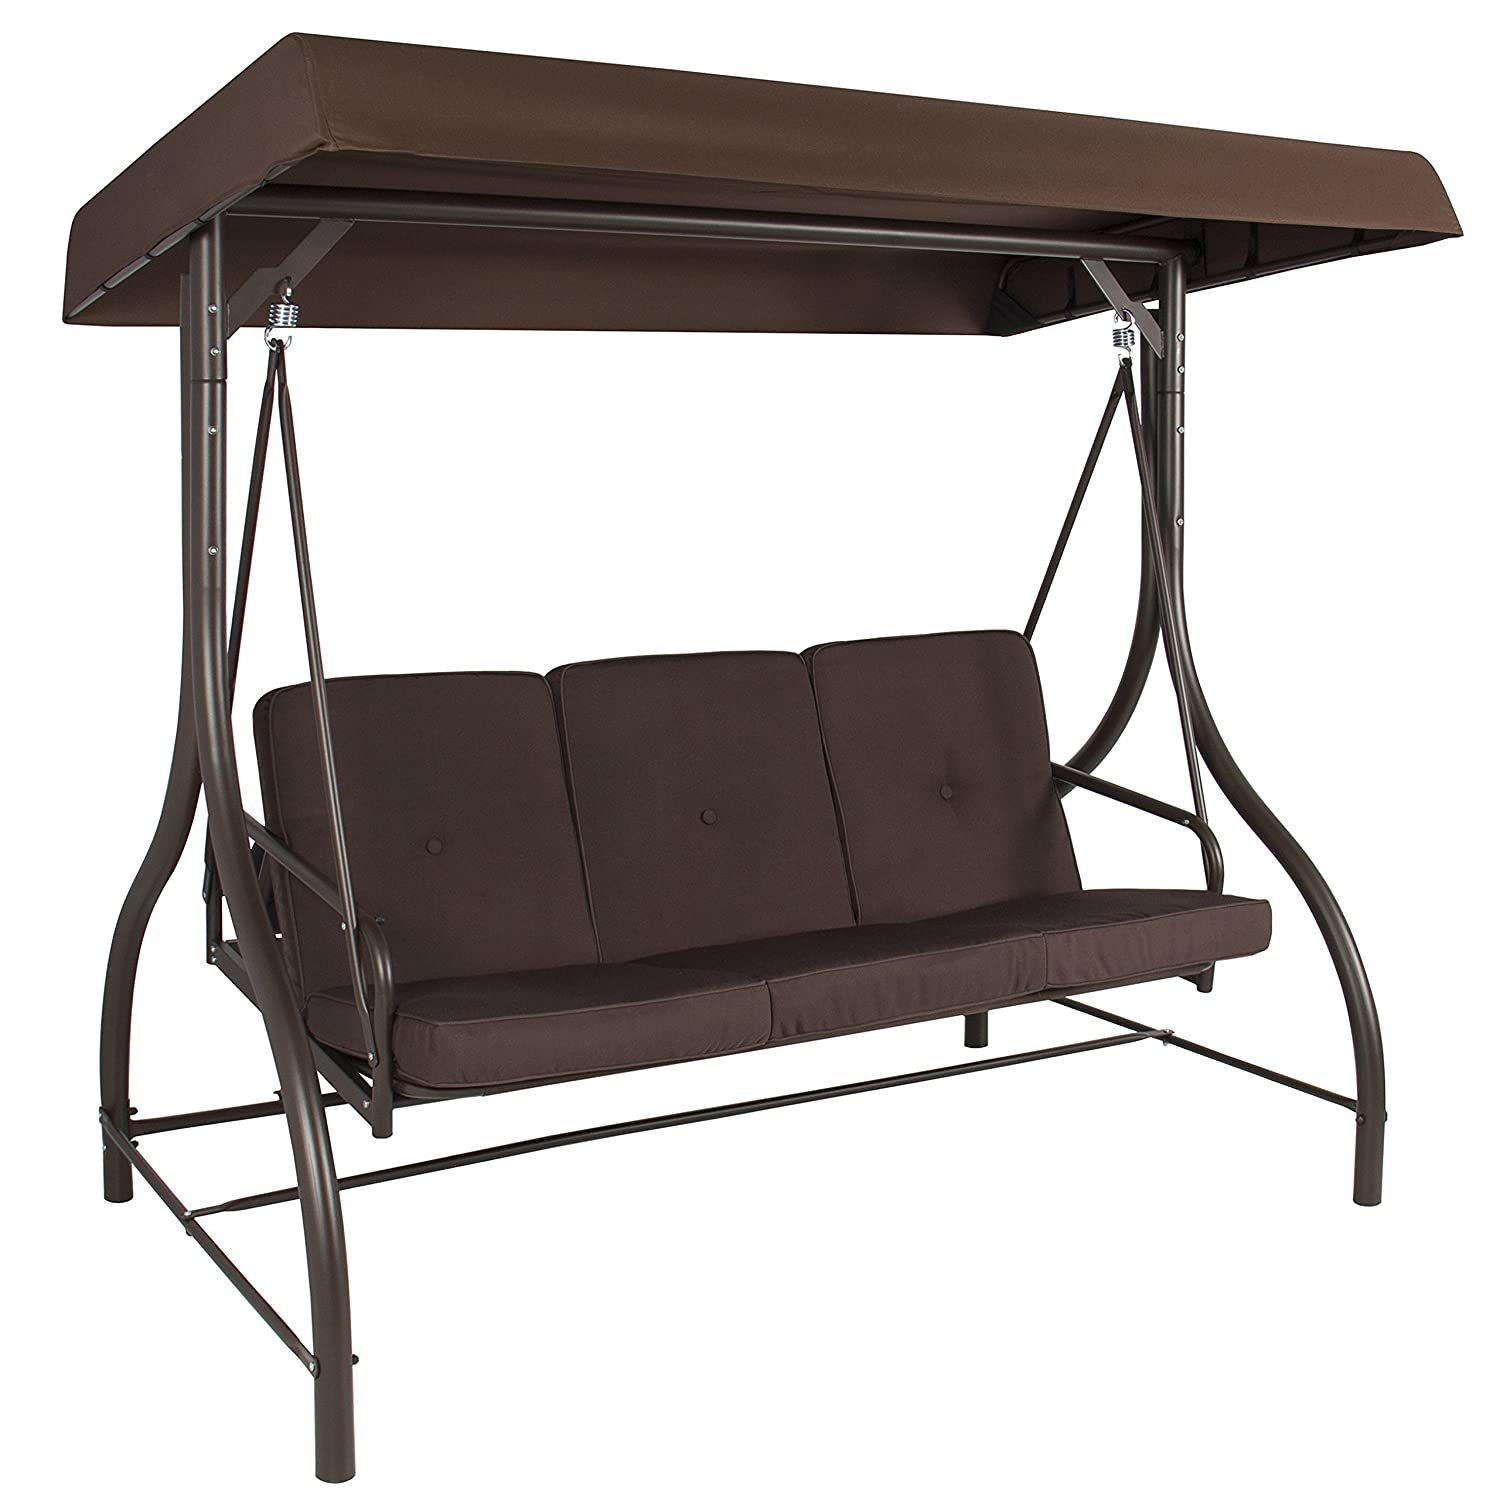 Amazon.com  Best Choice Products Converting Outdoor Swing Canopy Hammock Seats 3 Patio Deck Furniture Brown  Garden u0026 Outdoor  sc 1 st  Amazon.com : cheap patio swings with canopy - memphite.com